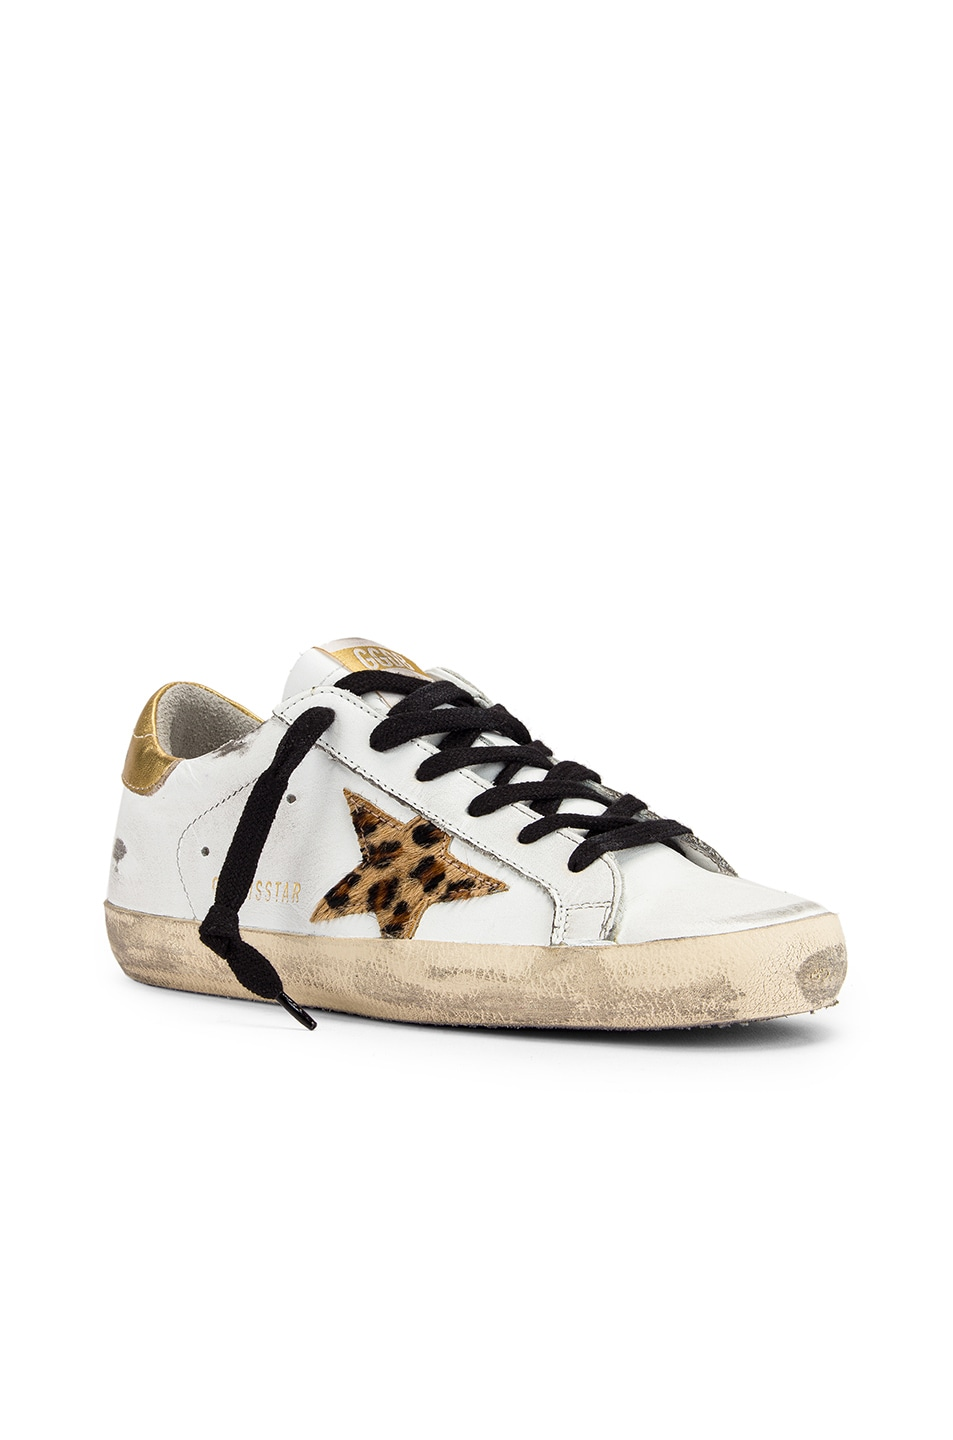 Image 2 of Golden Goose Superstar Sneaker in White Leather & Gold Leopard